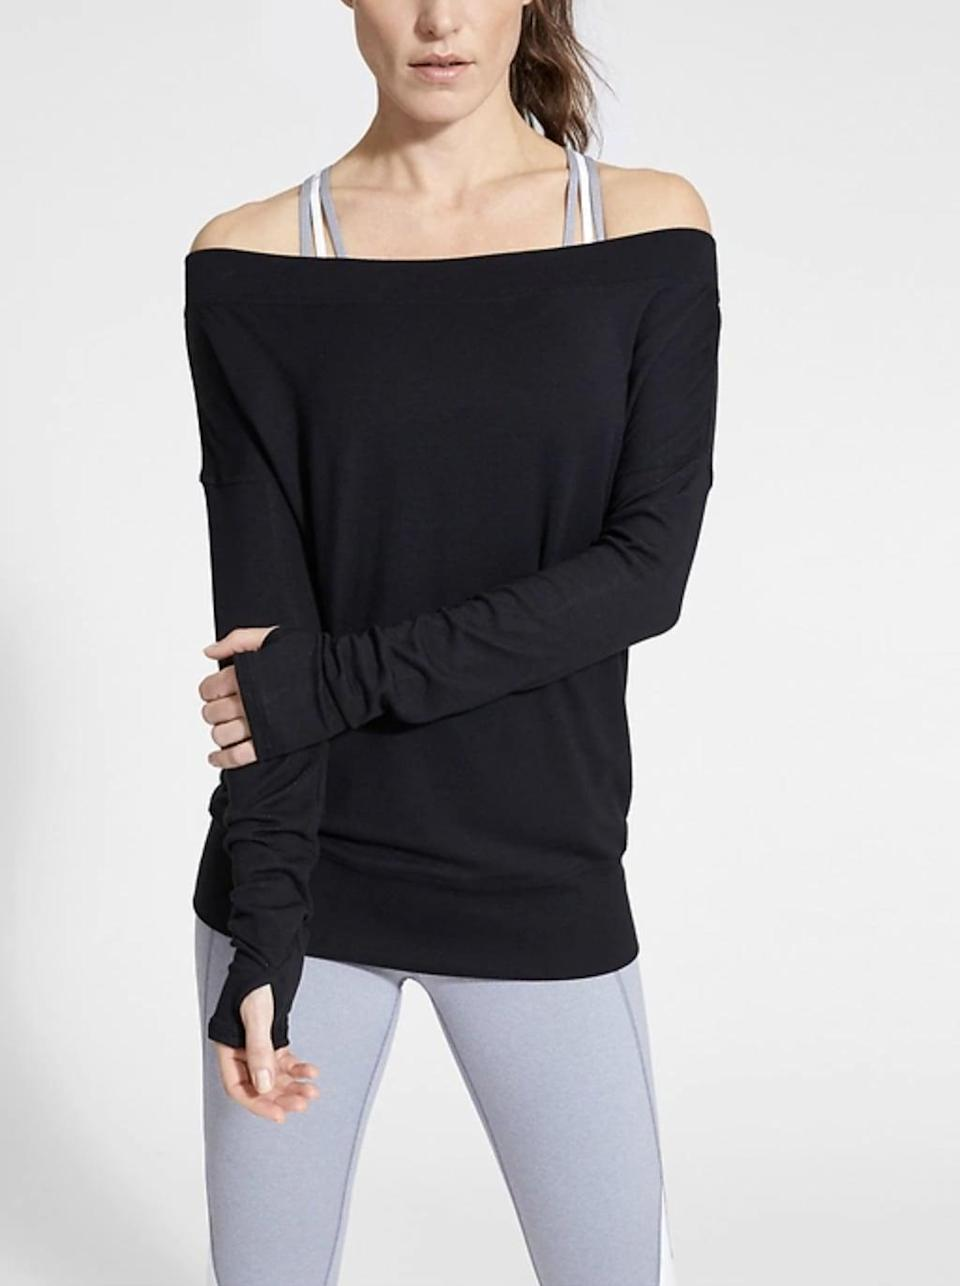 <p>You don't need to be a dancer to stock up on ballet-inspired gear. This <span>Athleta Studio Barre Sweatshirt</span> ($69) is perfect for any kind of workout, from yoga to reenacting that iconic water scene from <strong>Flashdance</strong>. </p>